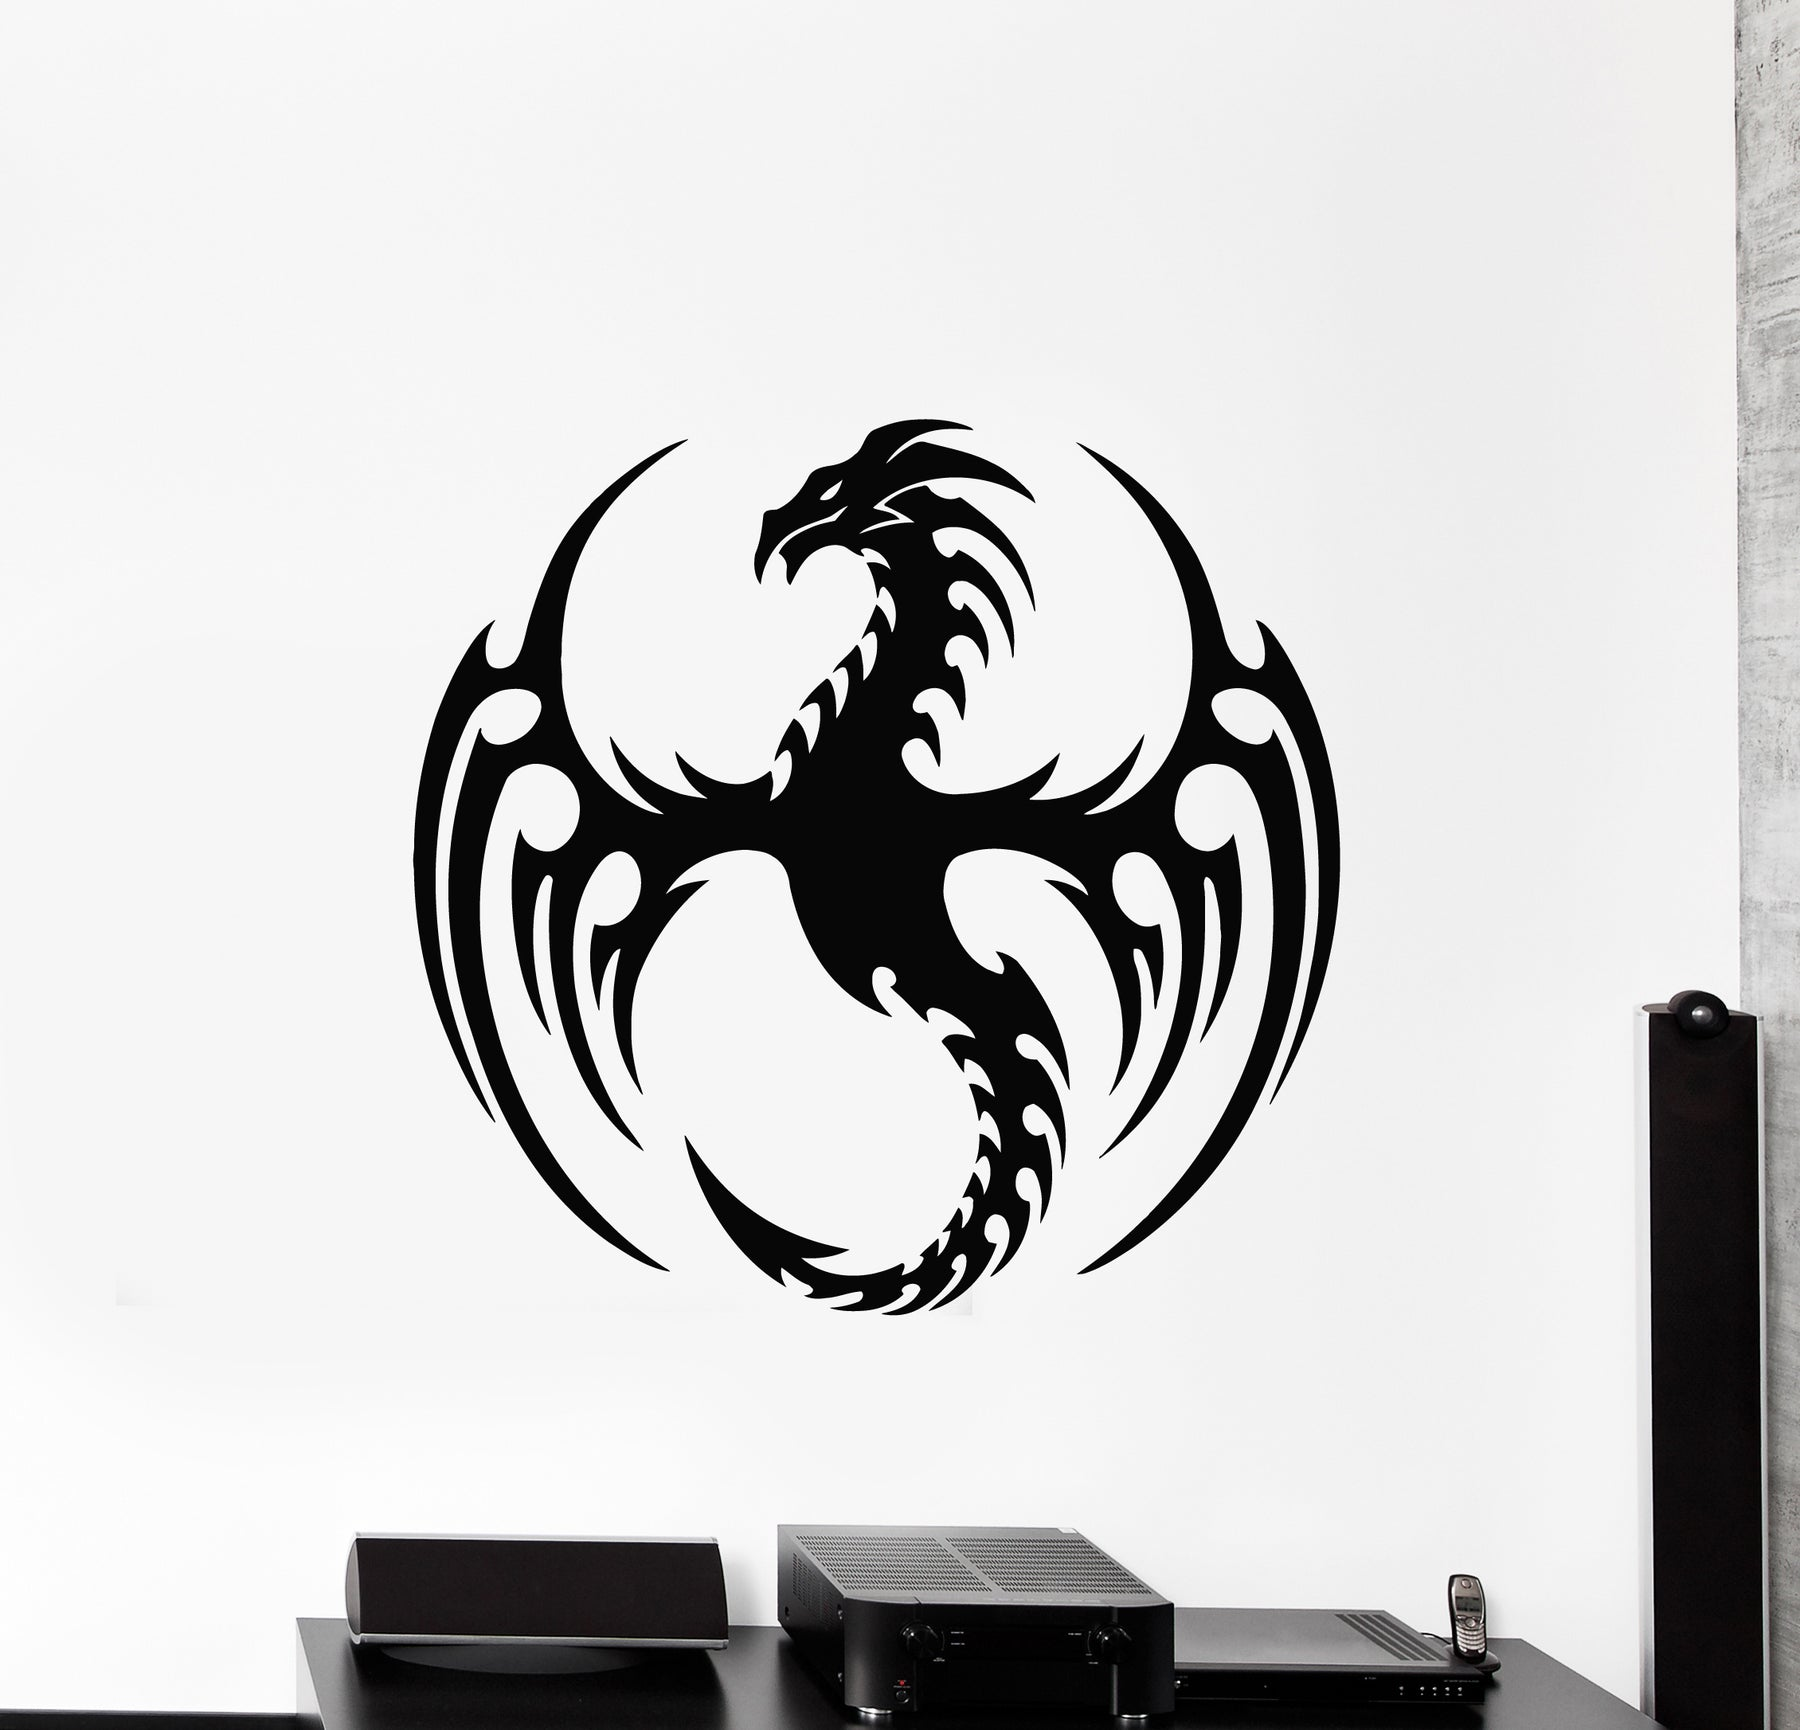 Vinyl Wall Decal Dragon Fire Fantasy Myth Animal Child Room Art Stickers Mural (g837)